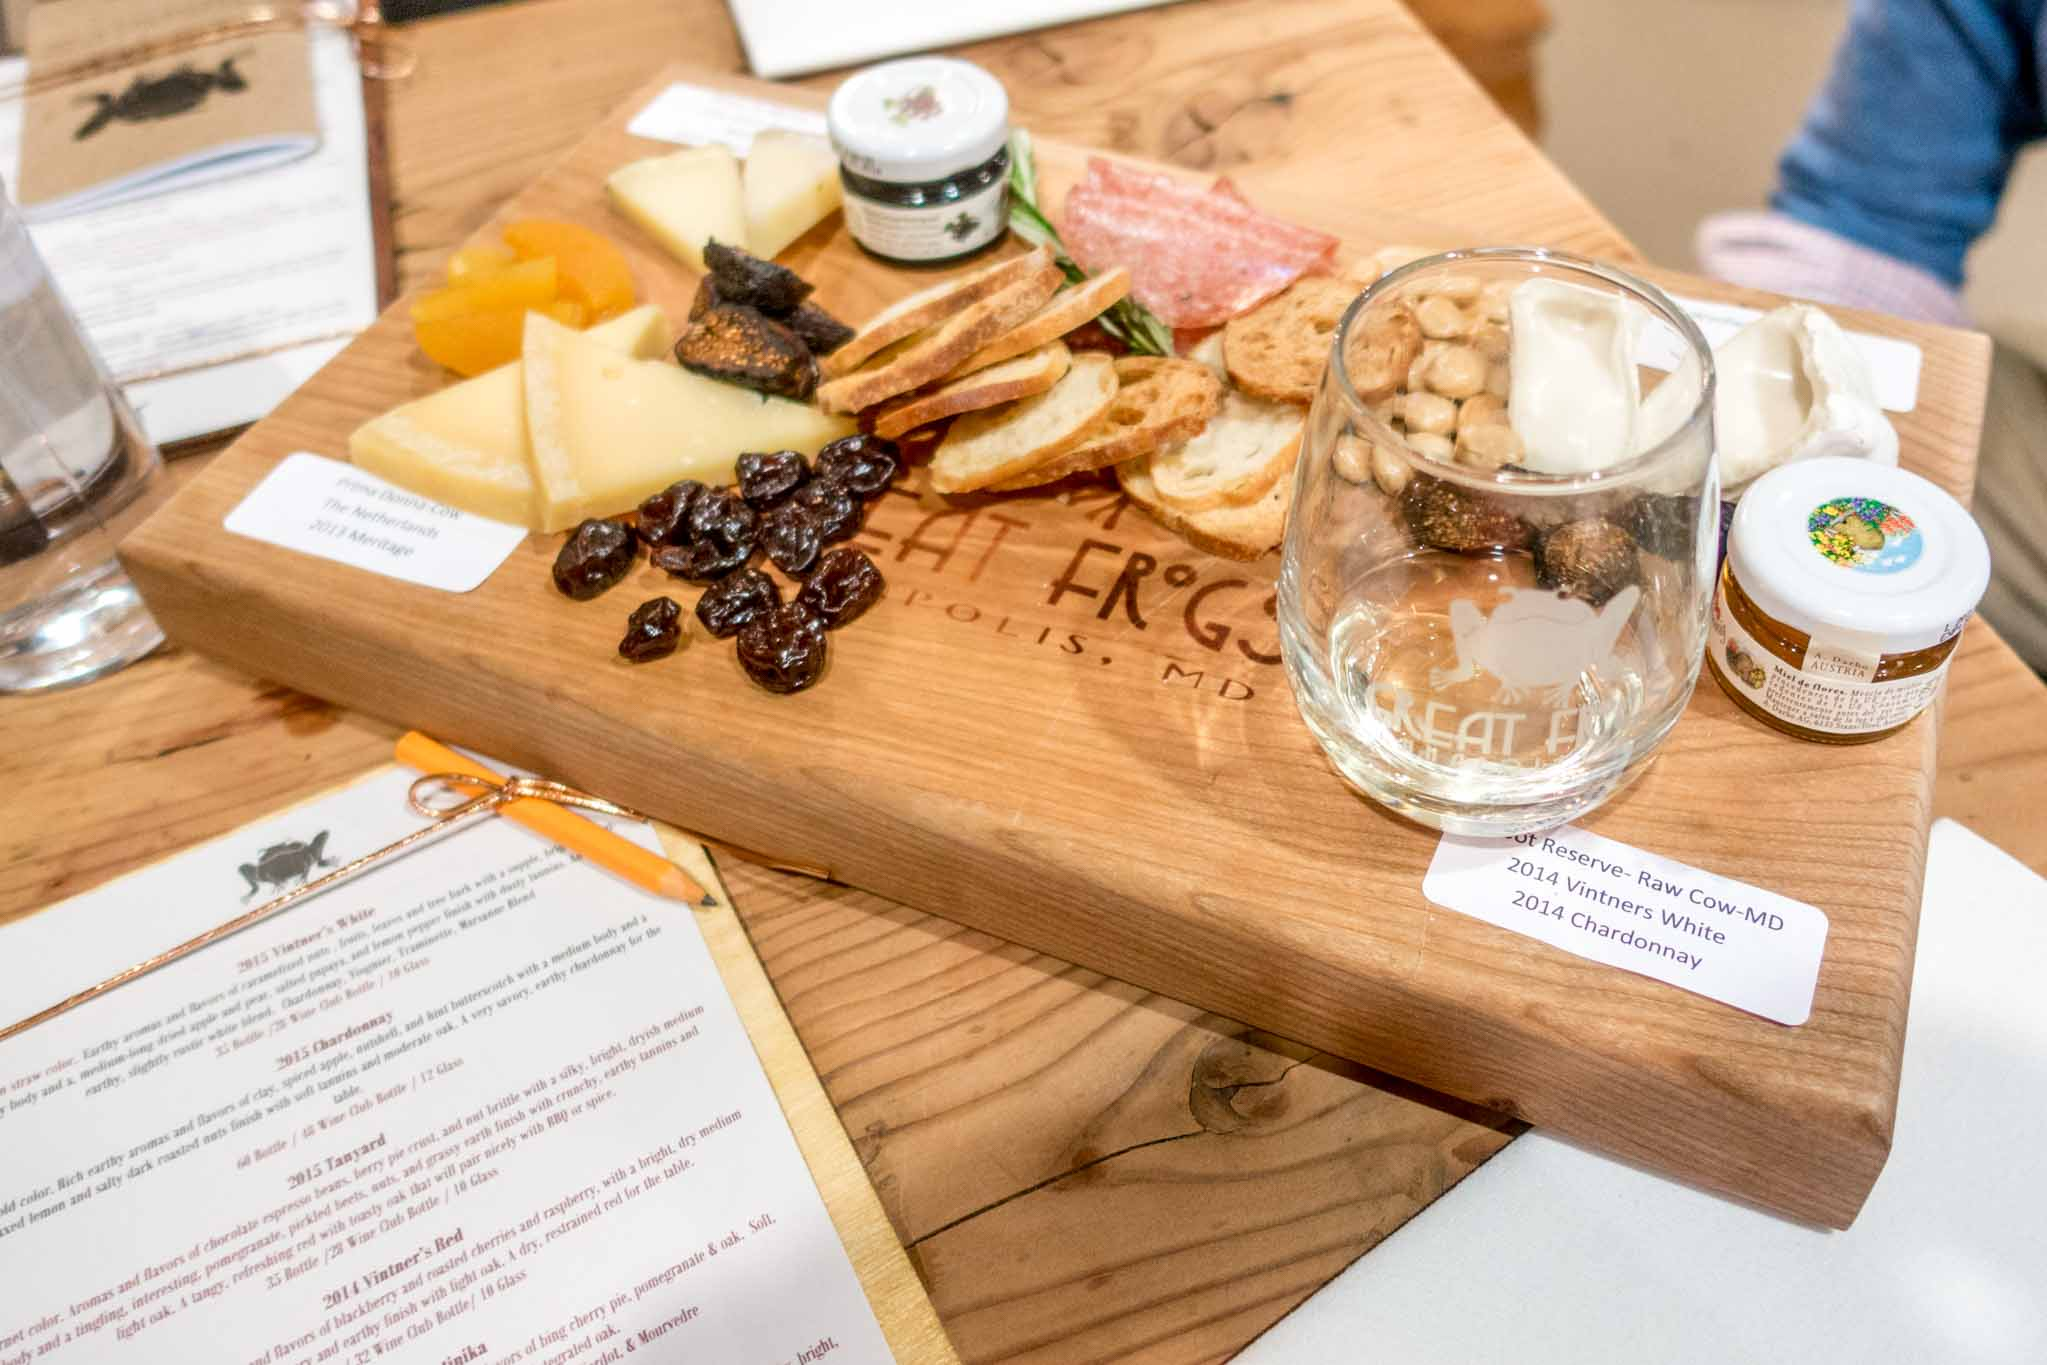 Foods for wine and cheese pairing at Great Frogs Winery